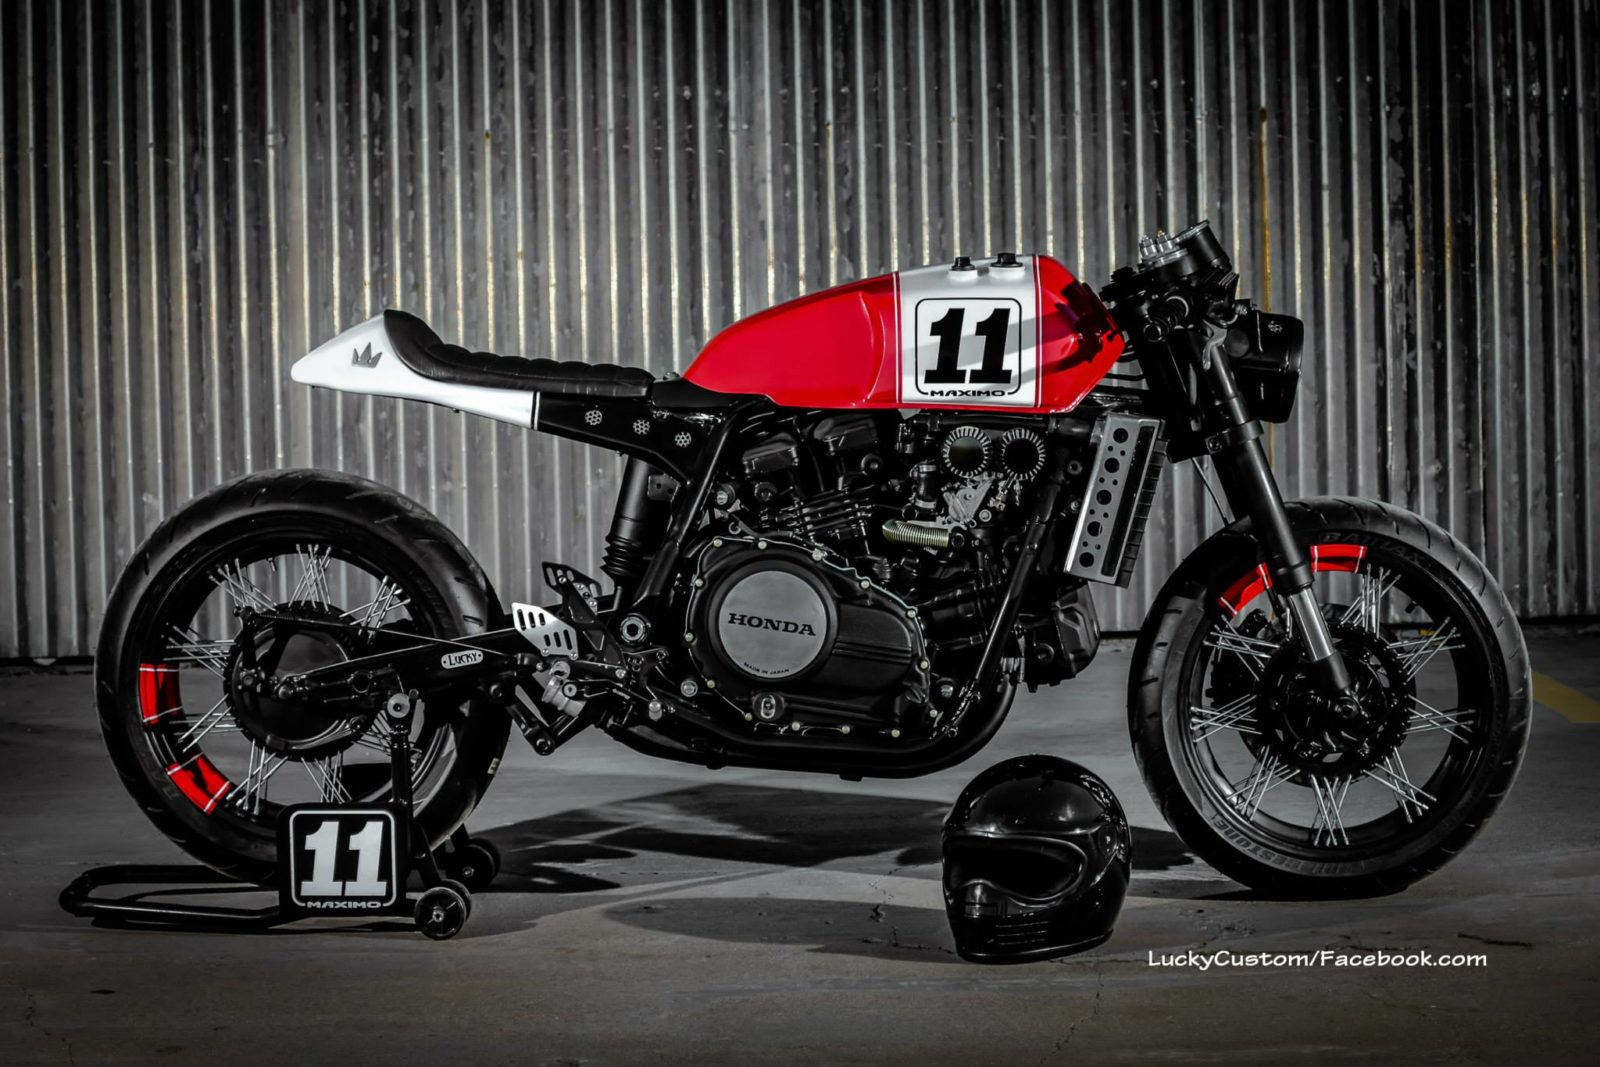 Honda VF750 Cafe Racer By Lucky Custom